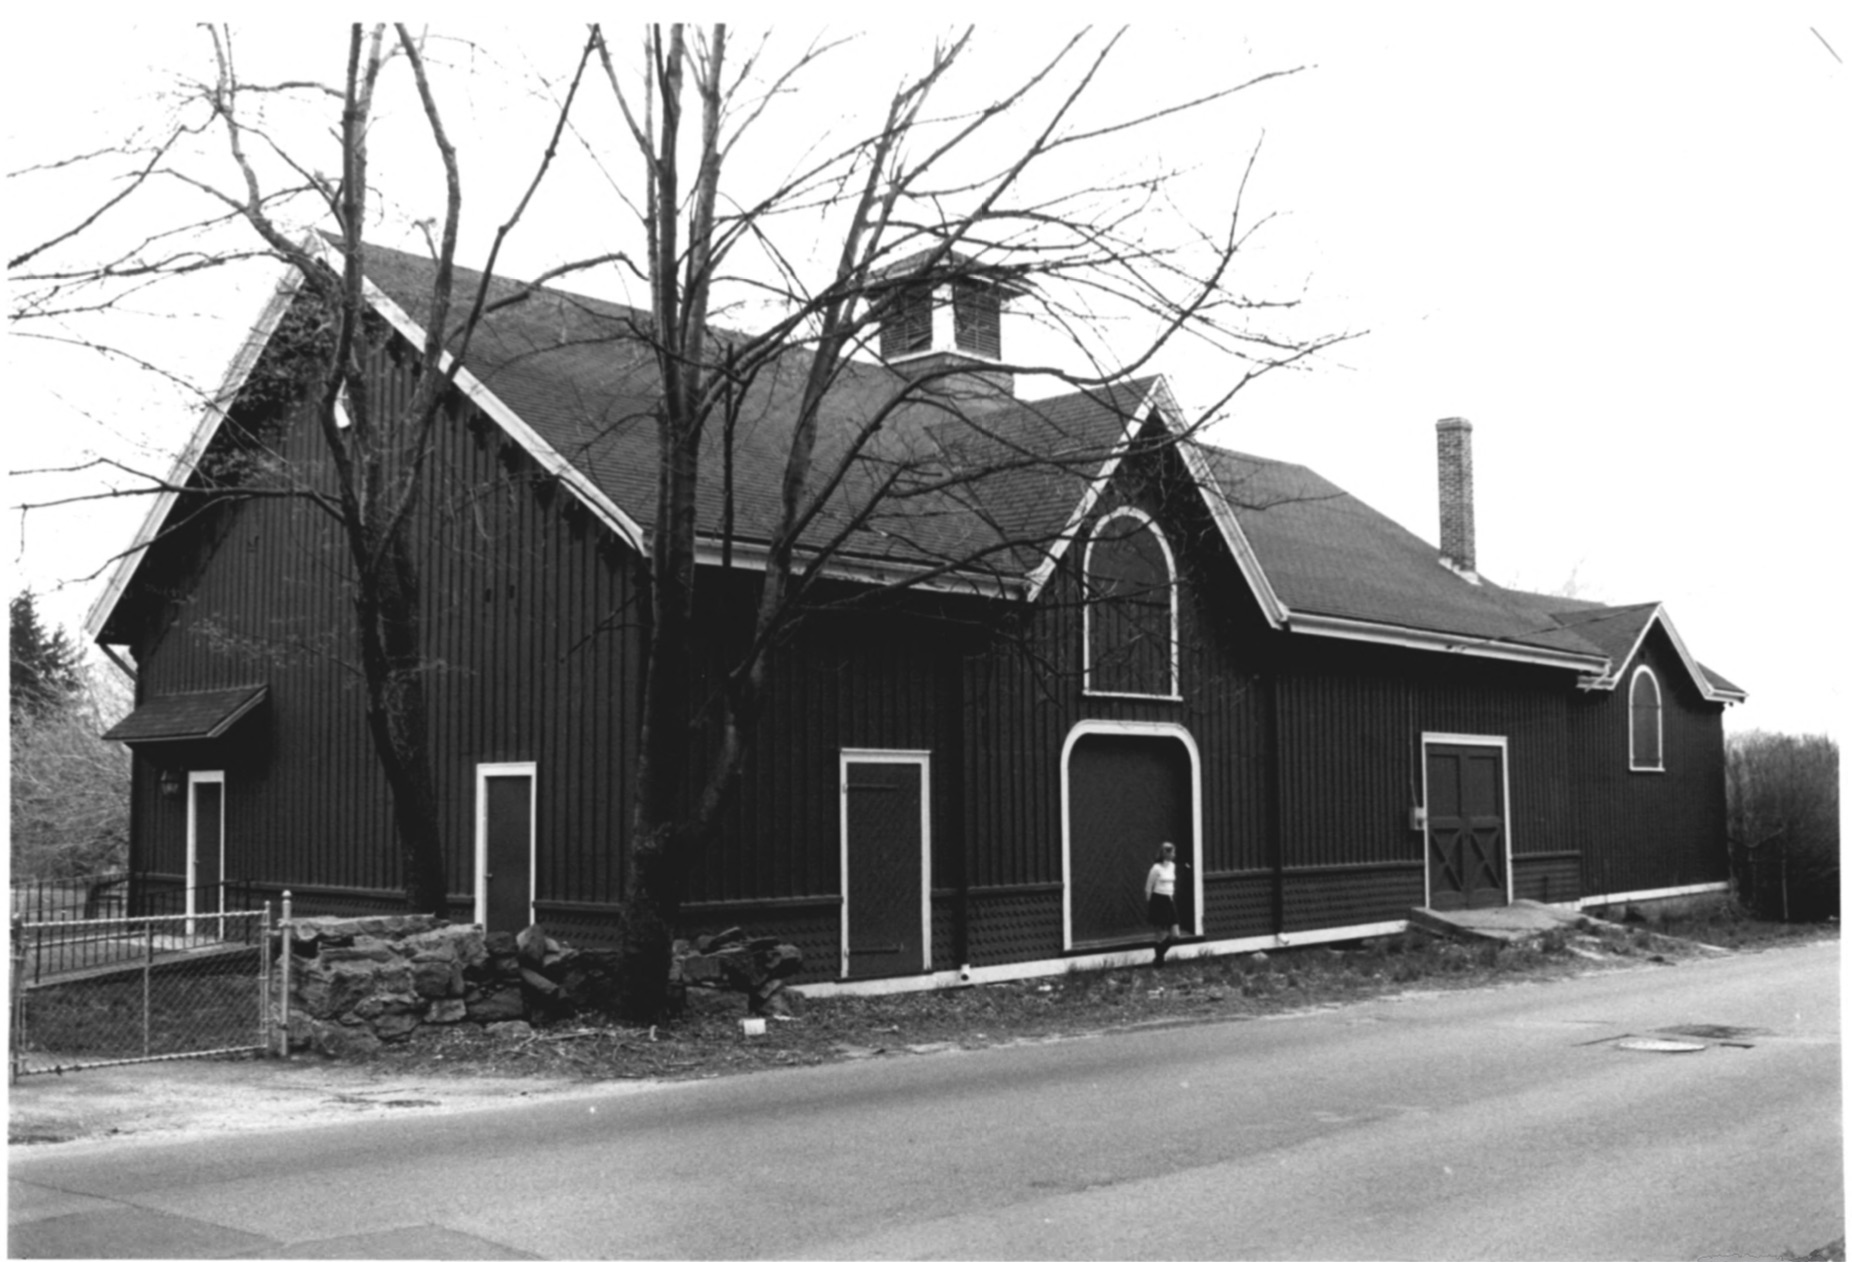 North-Facing View of the CJ Starr Barn in 1979 by Steven H. Hirschberg as Recorded on the National Park Service National Register of Historic Places